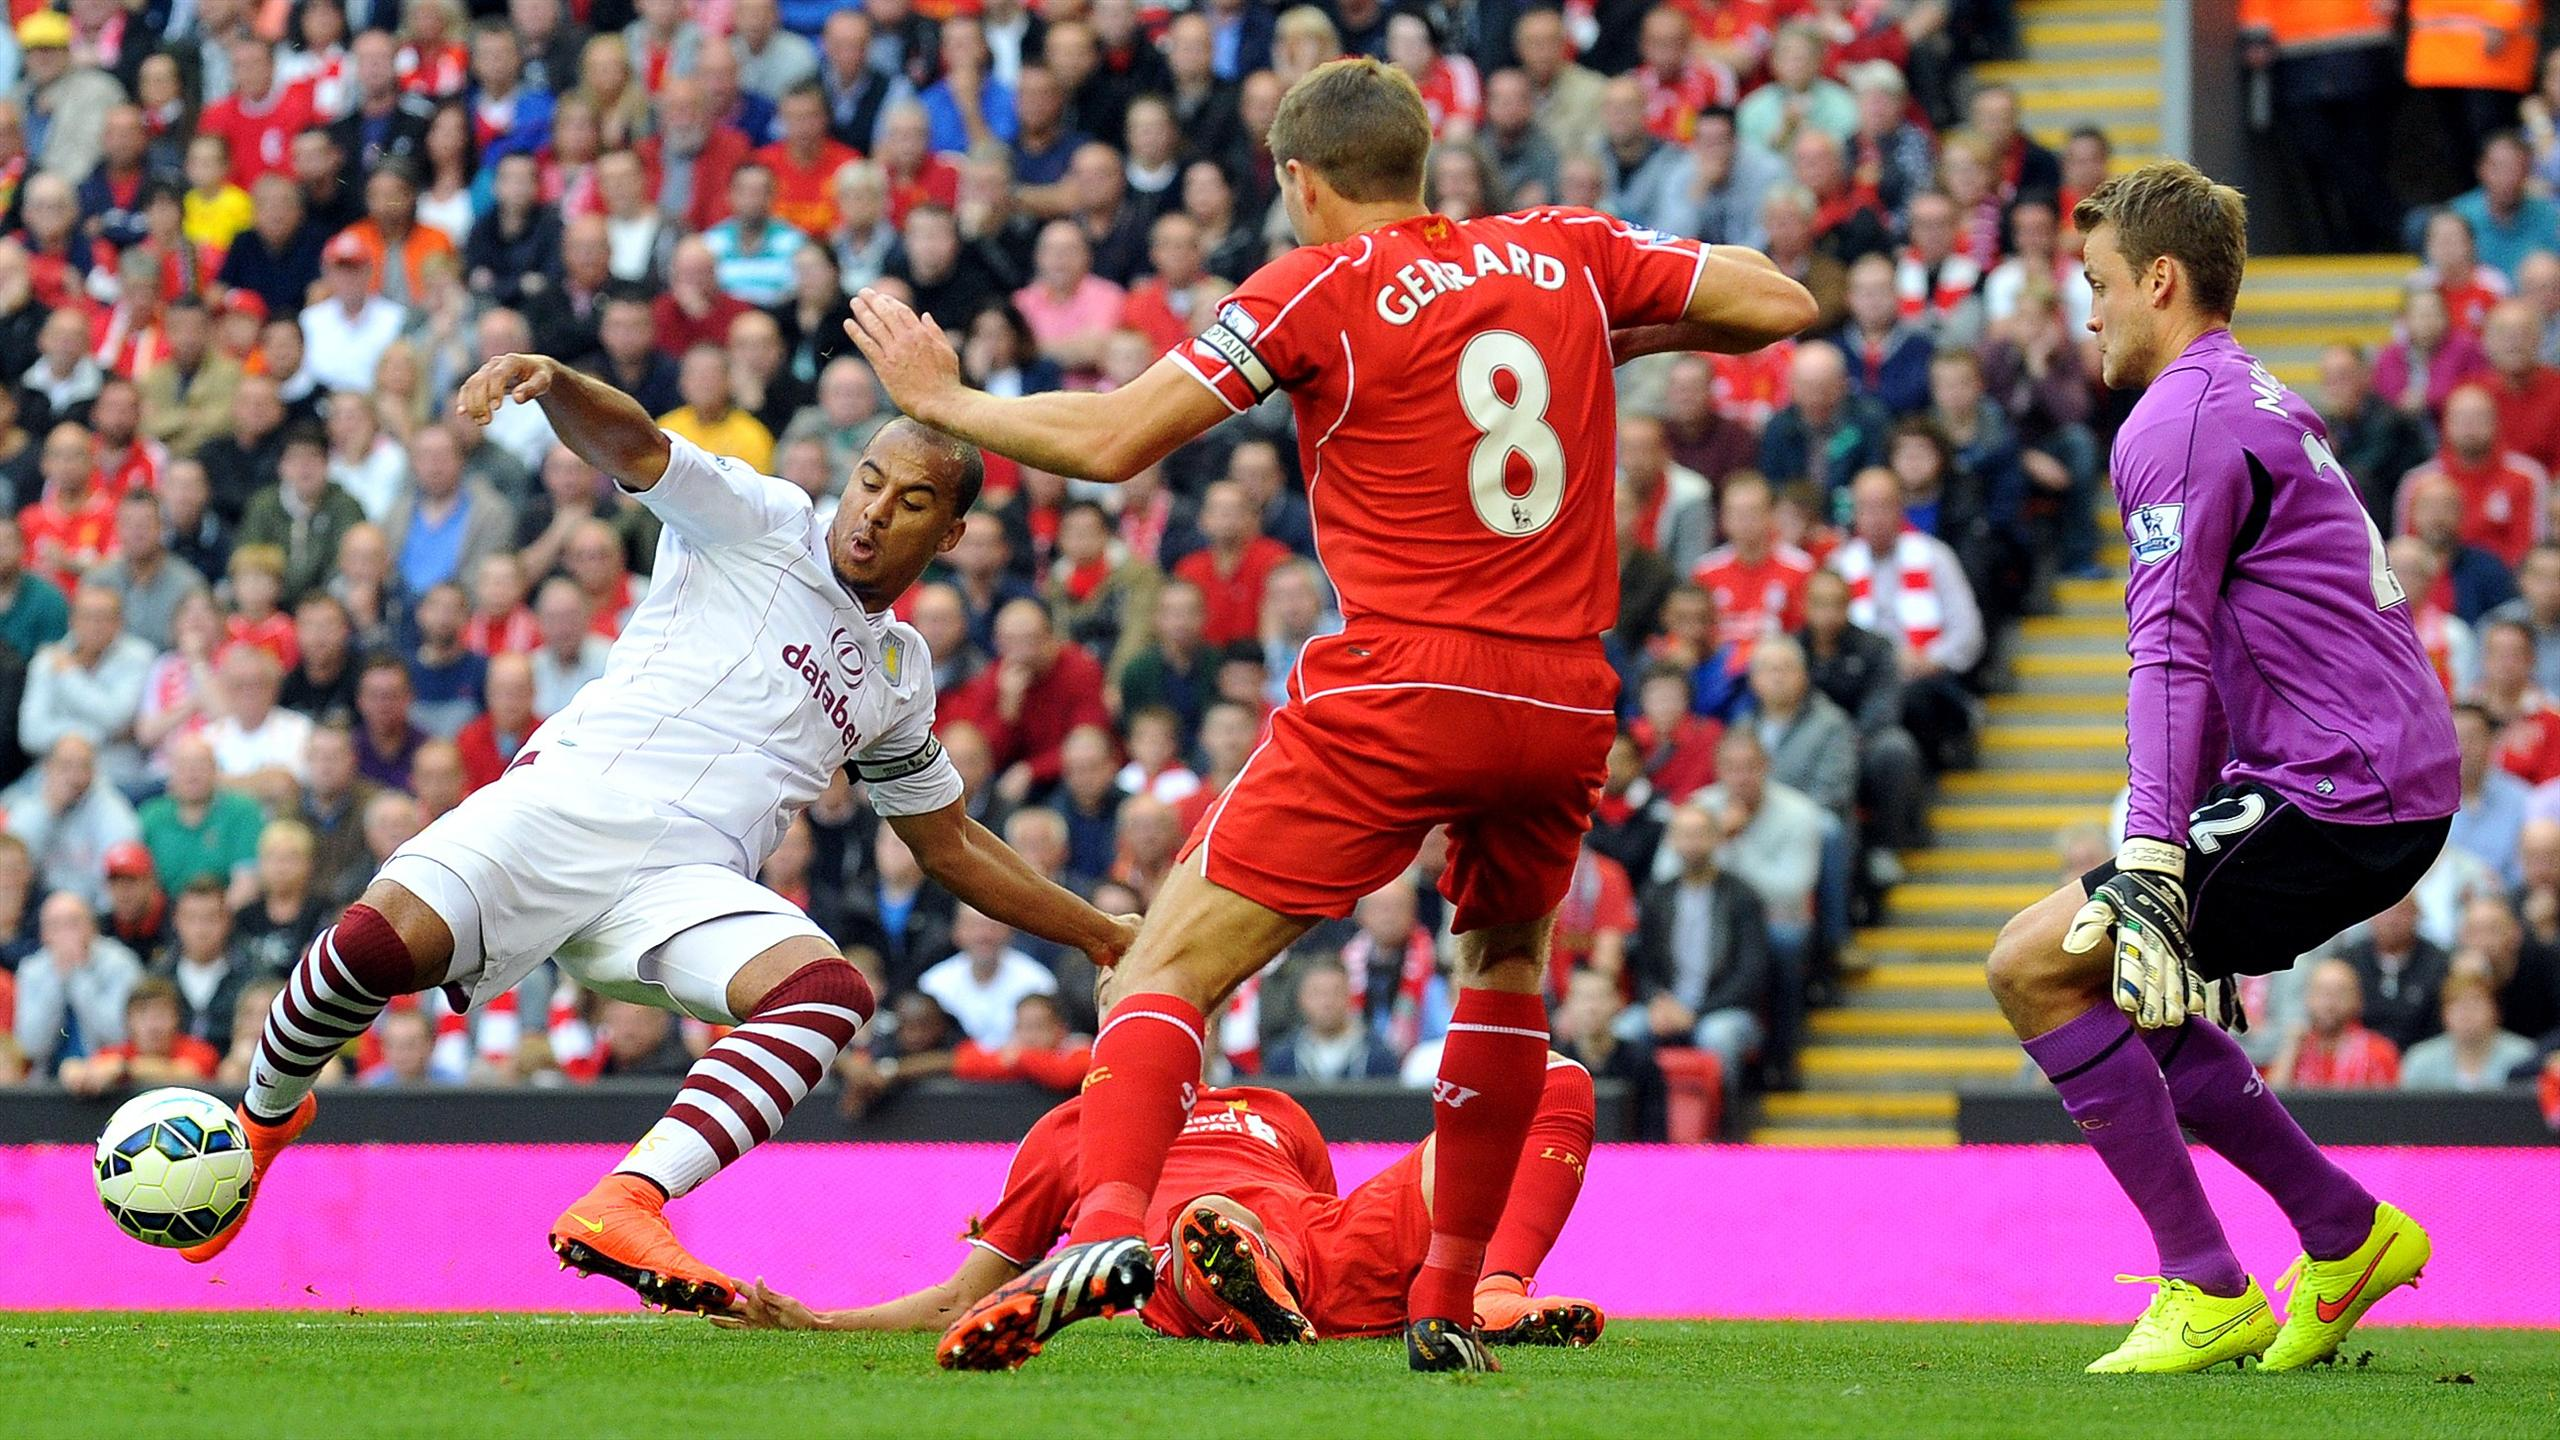 Video: Liverpool vs Aston Villa